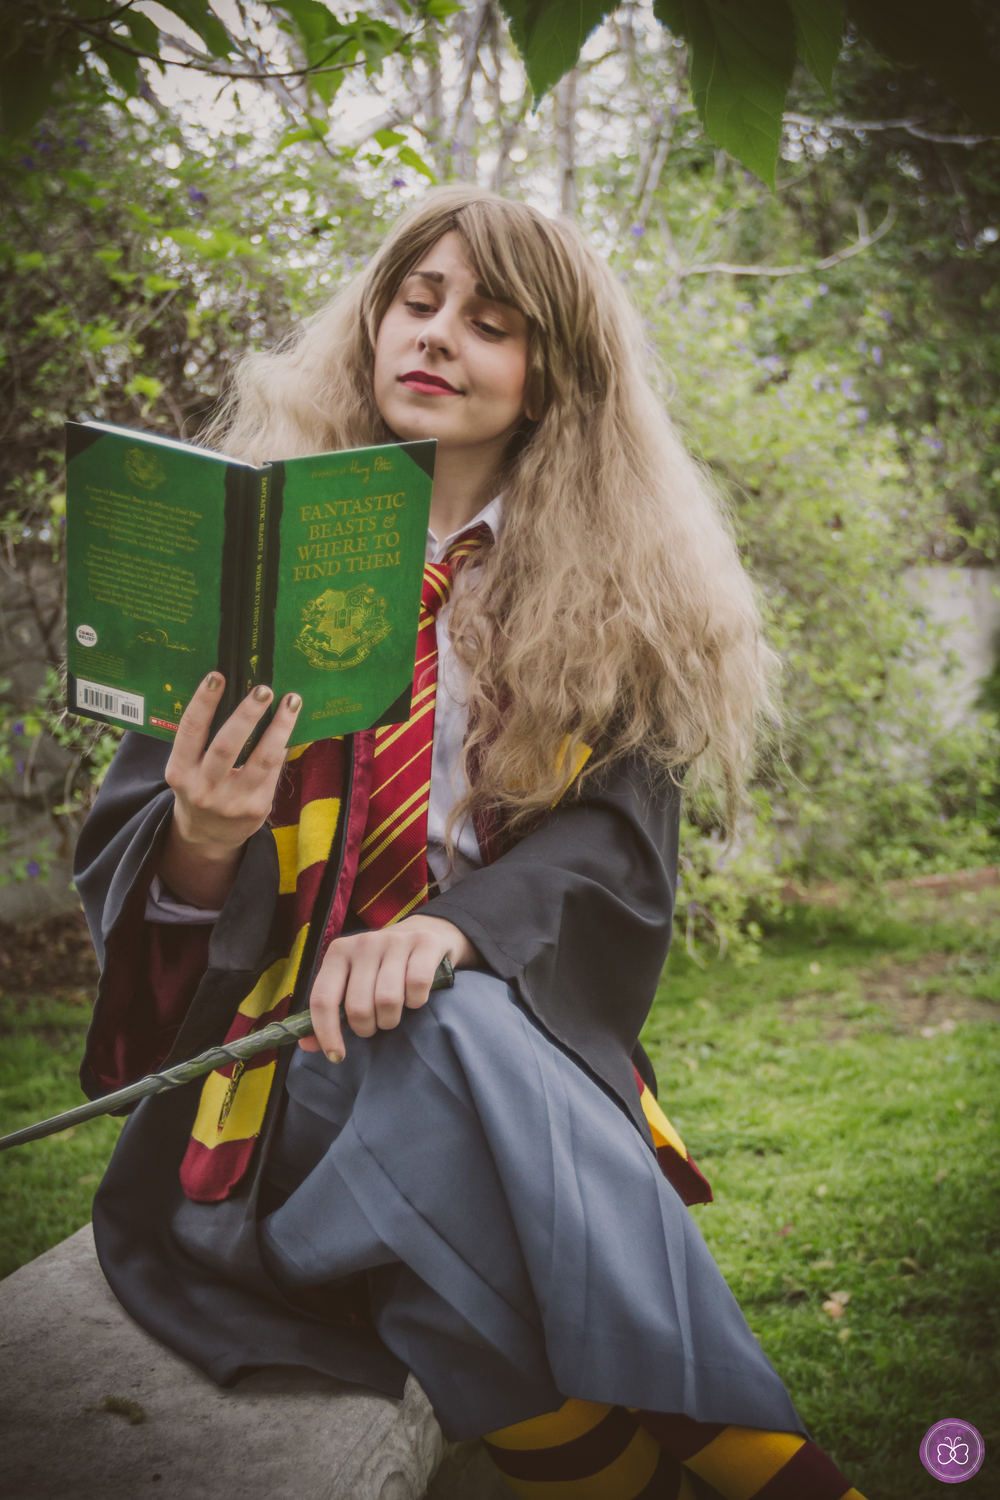 hermione harry potter hogwarts party wizard character los angeles (1 of 3).jpg